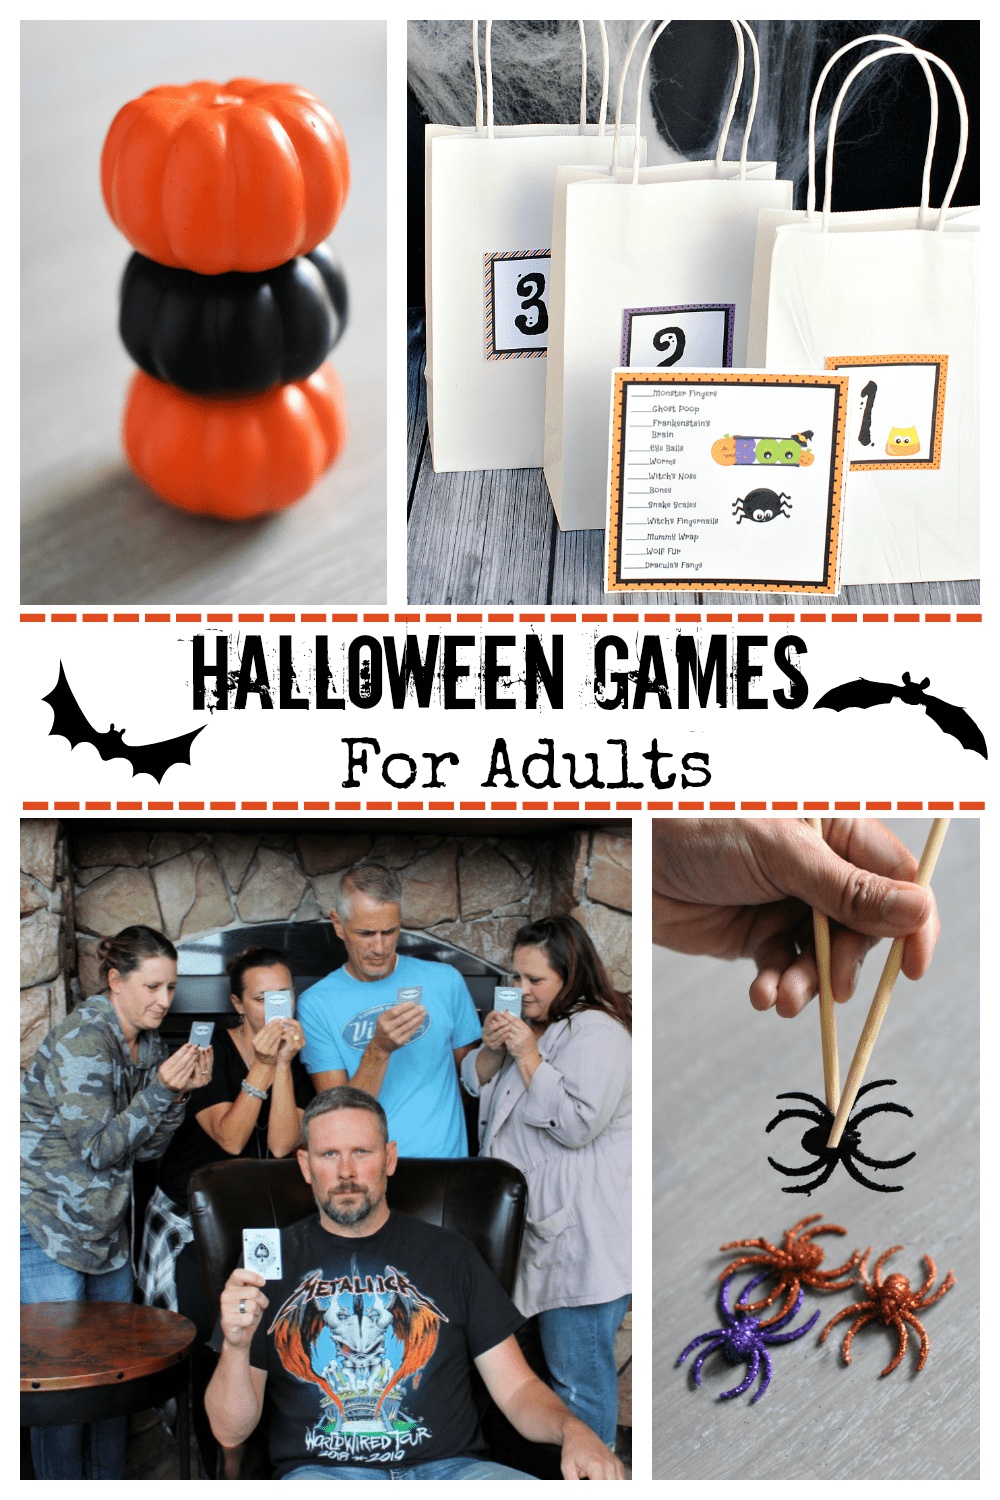 Fun Halloween Games for Adults. These Halloween games are perfect for your next Halloween party! Fun, simple Halloween games. #Halloweengames #AdultHalloweengames #fungames #funHalloweengames